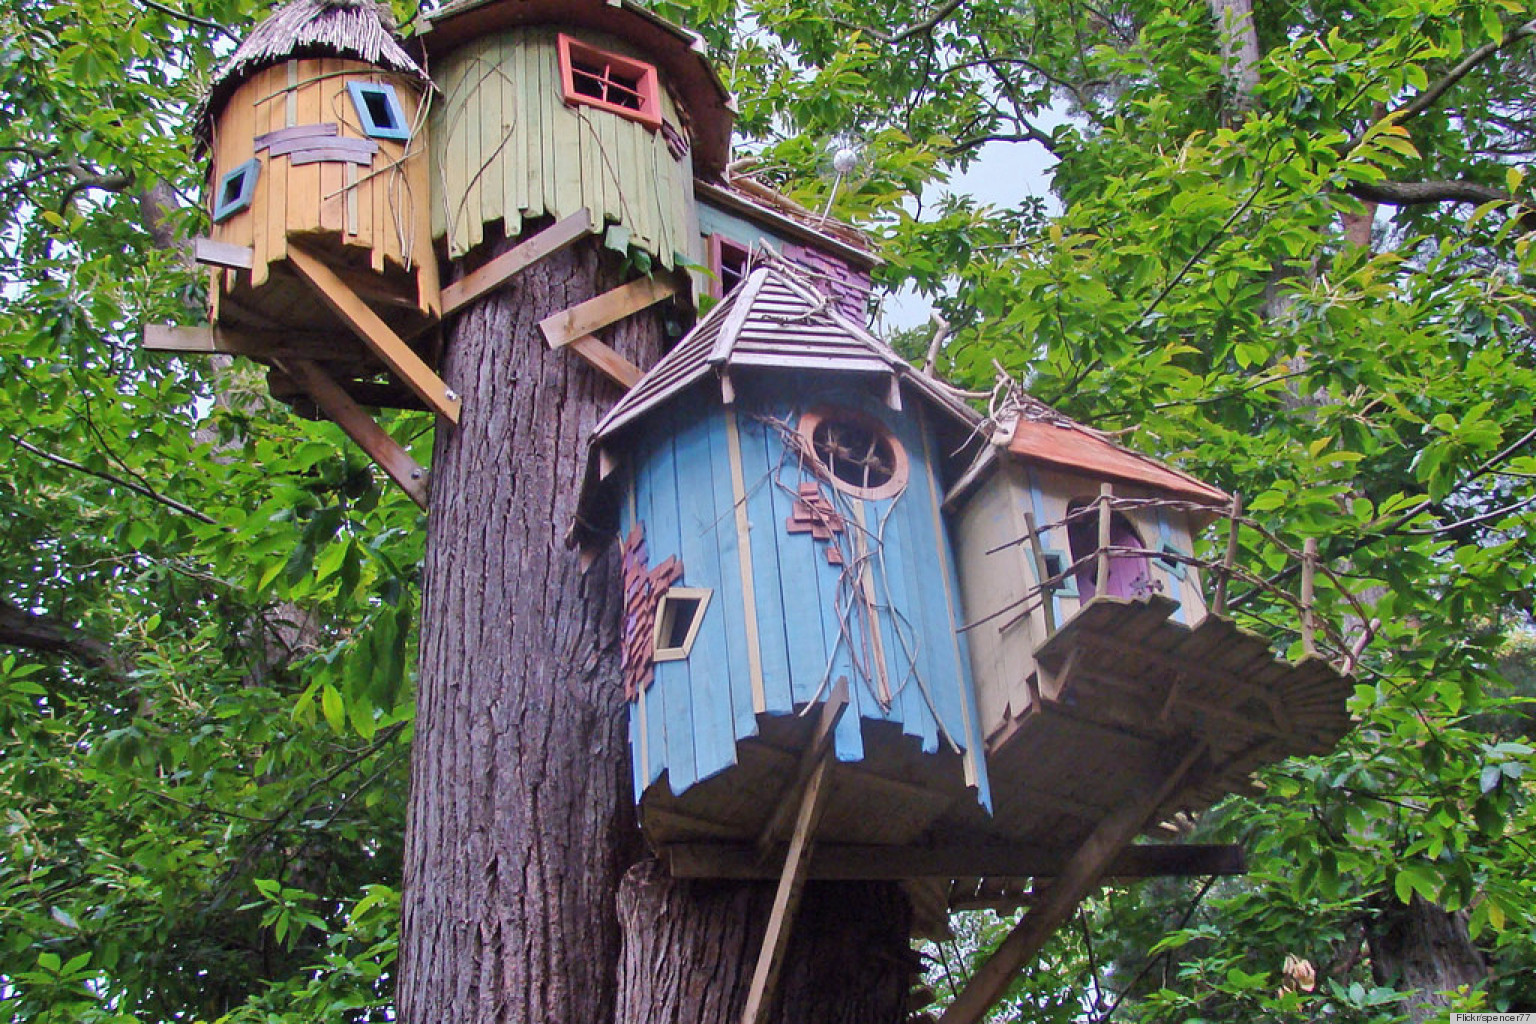 Cool Treehouse Designs We Wish We Had In Our Backyard  PHOTOS    Cool Treehouse Designs We Wish We Had In Our Backyard  PHOTOS    Huffington Post